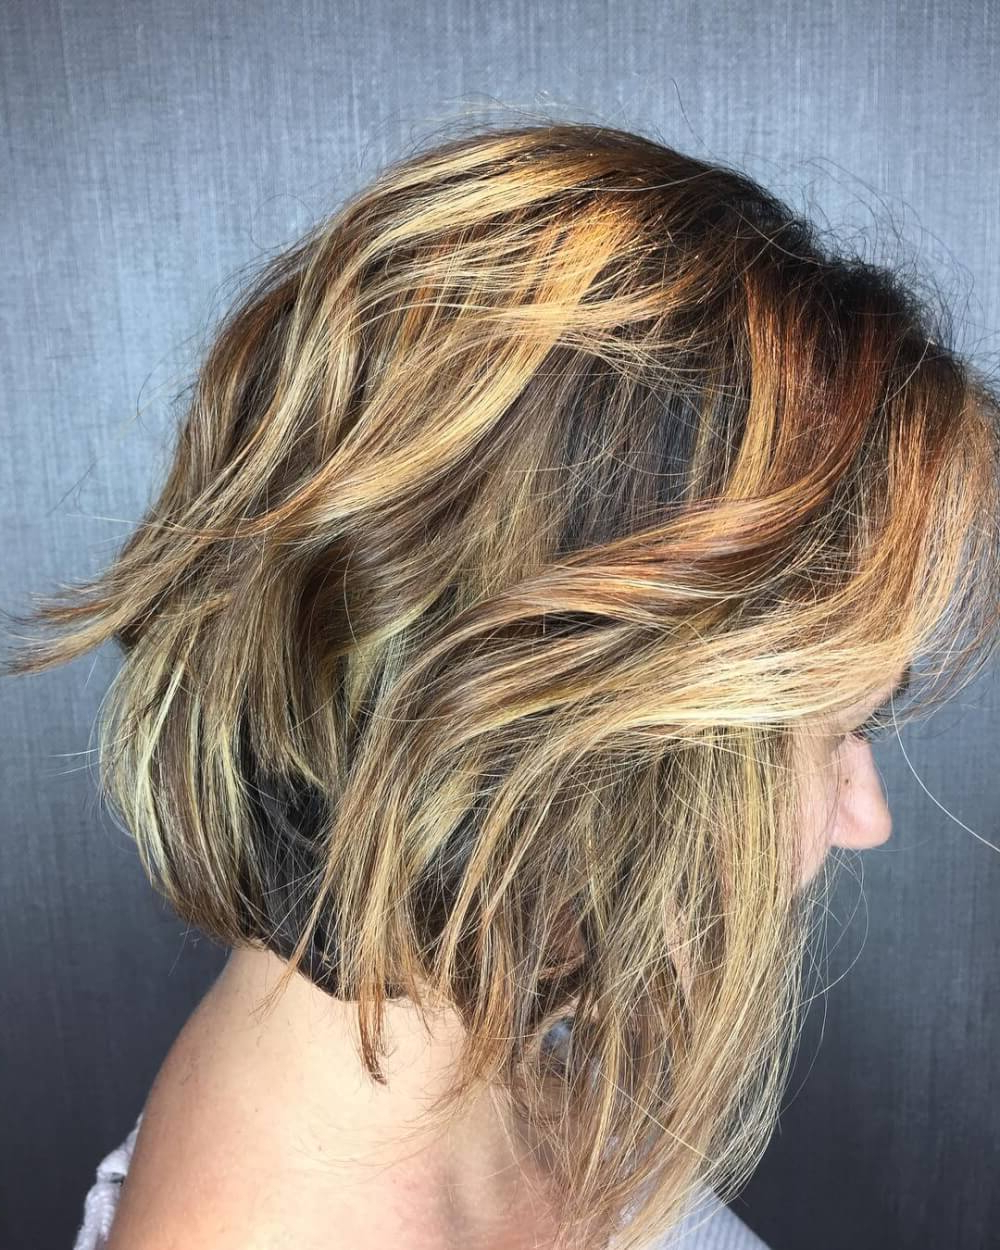 50 Chic Short Bob Haircuts & Hairstyles For Women In 2020 Inside Most Popular Short Cappuccino Bob Hairstyles (View 12 of 20)